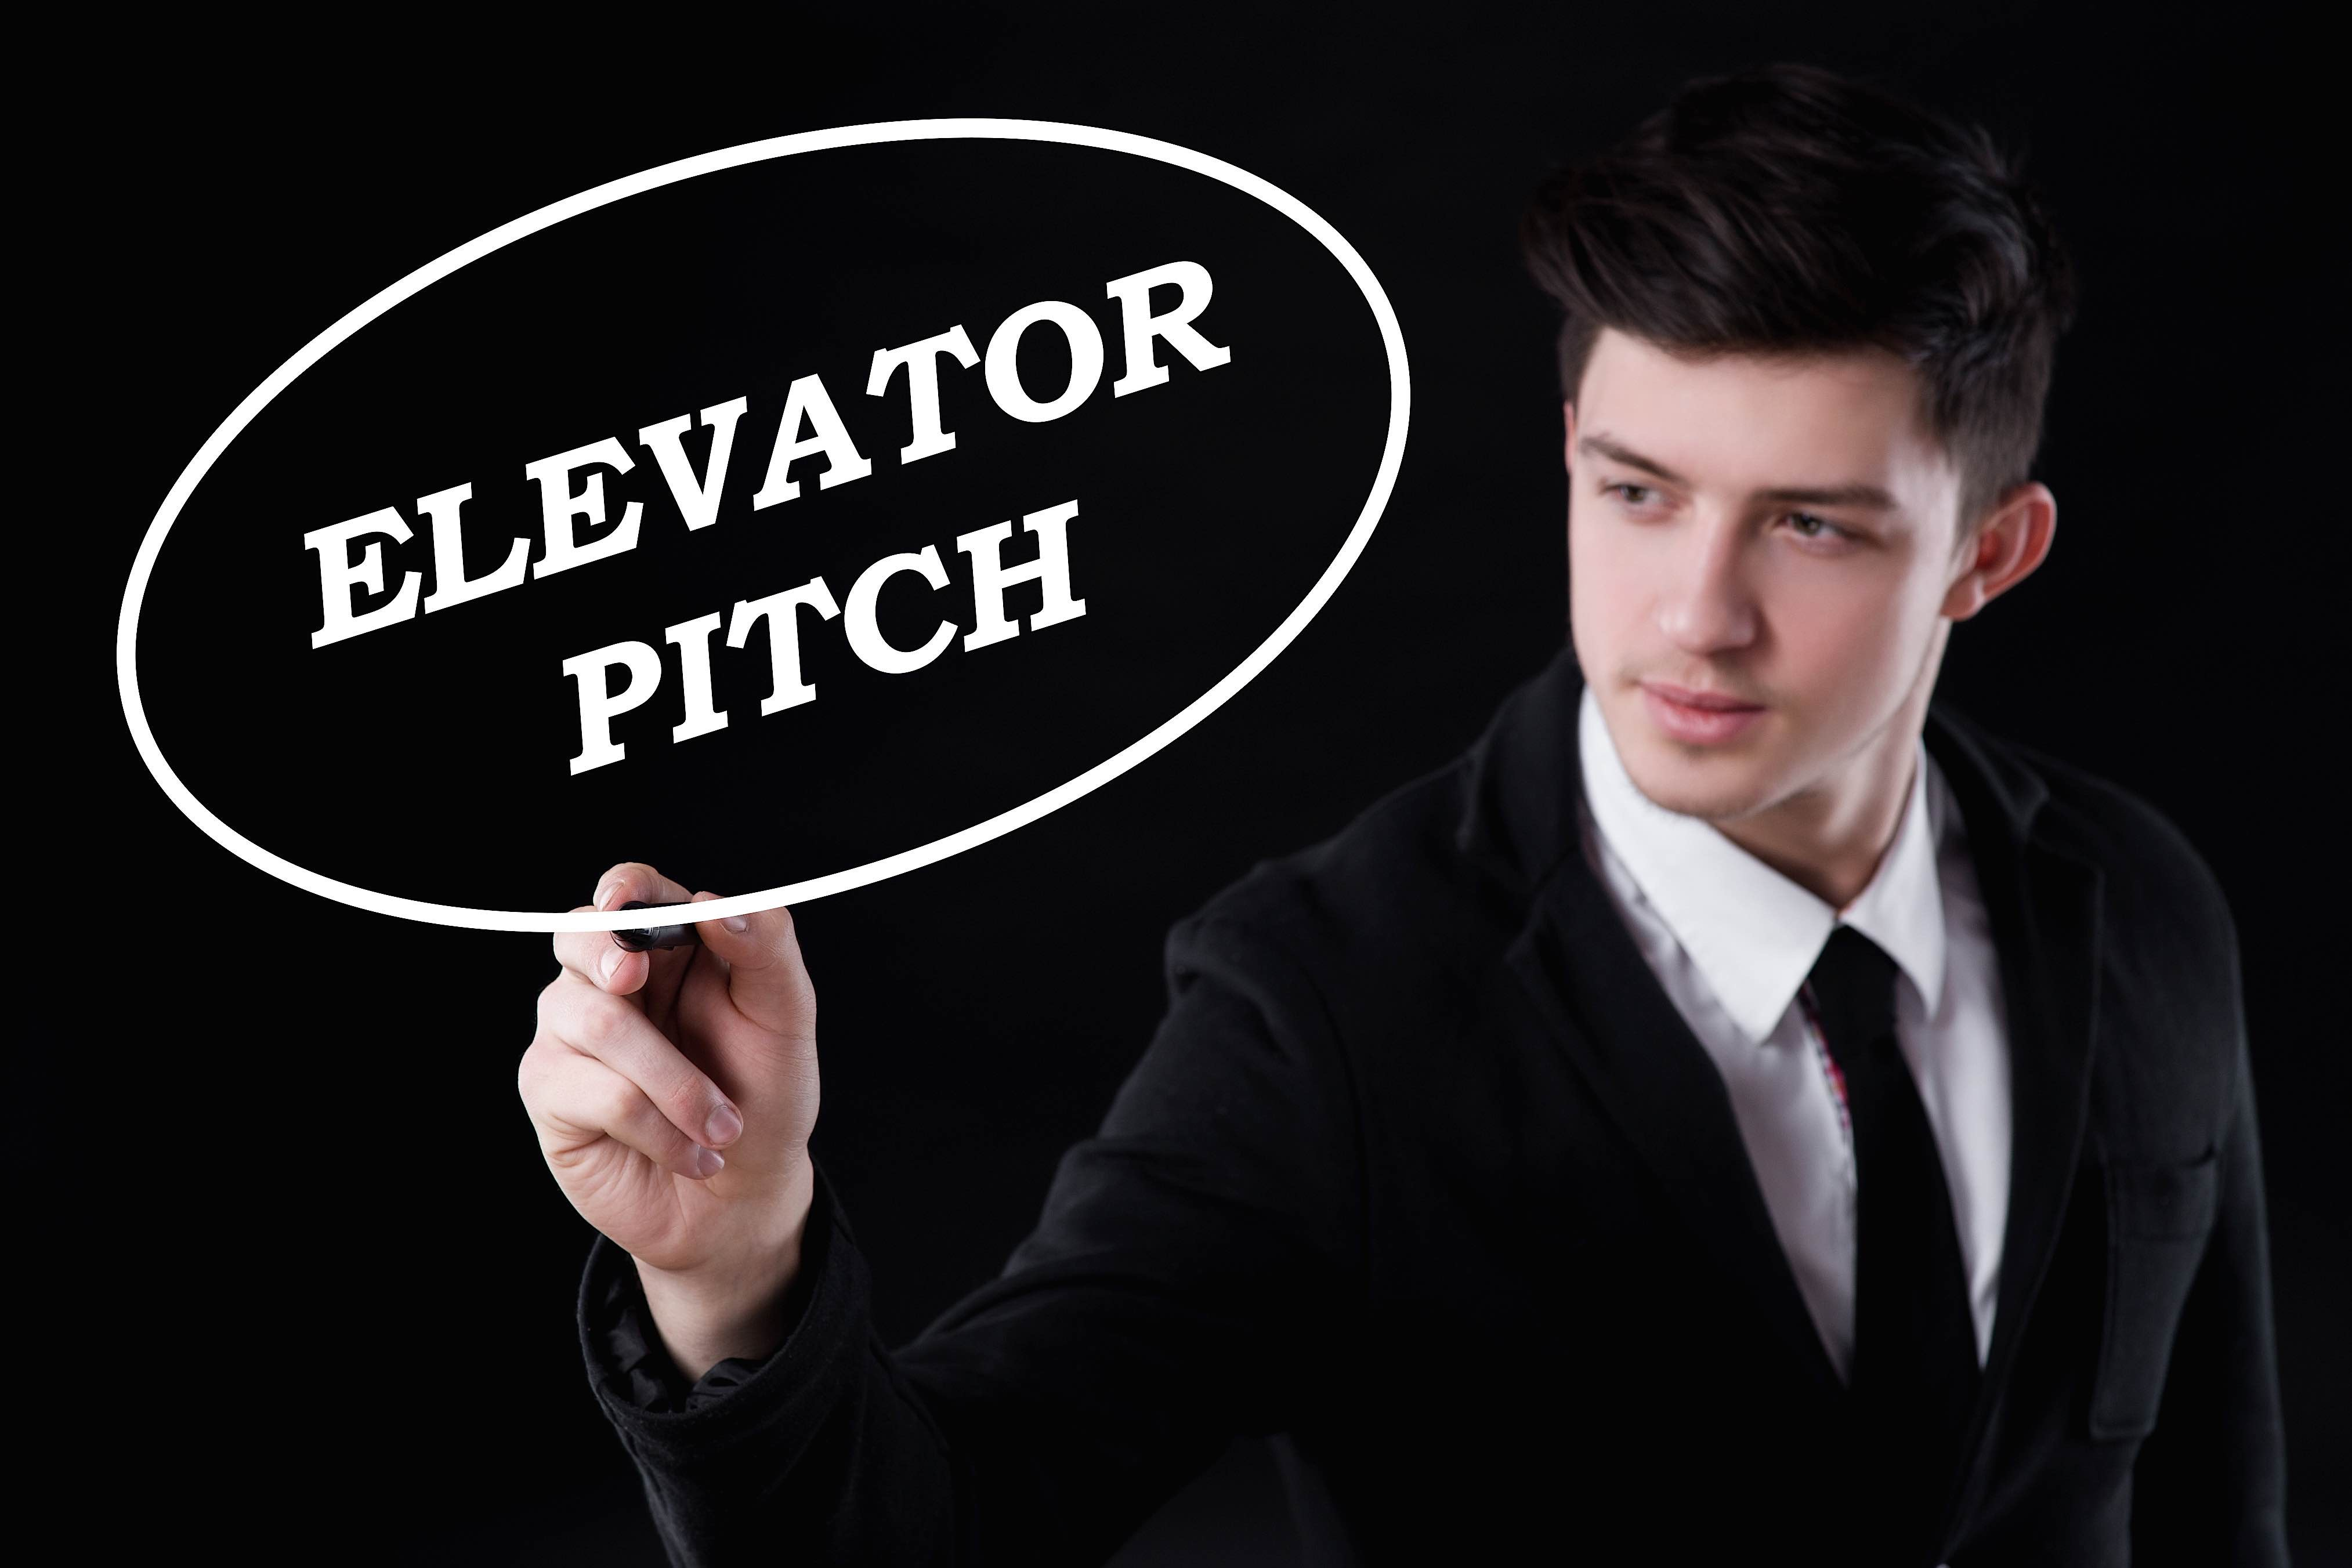 Networking elevator pitch